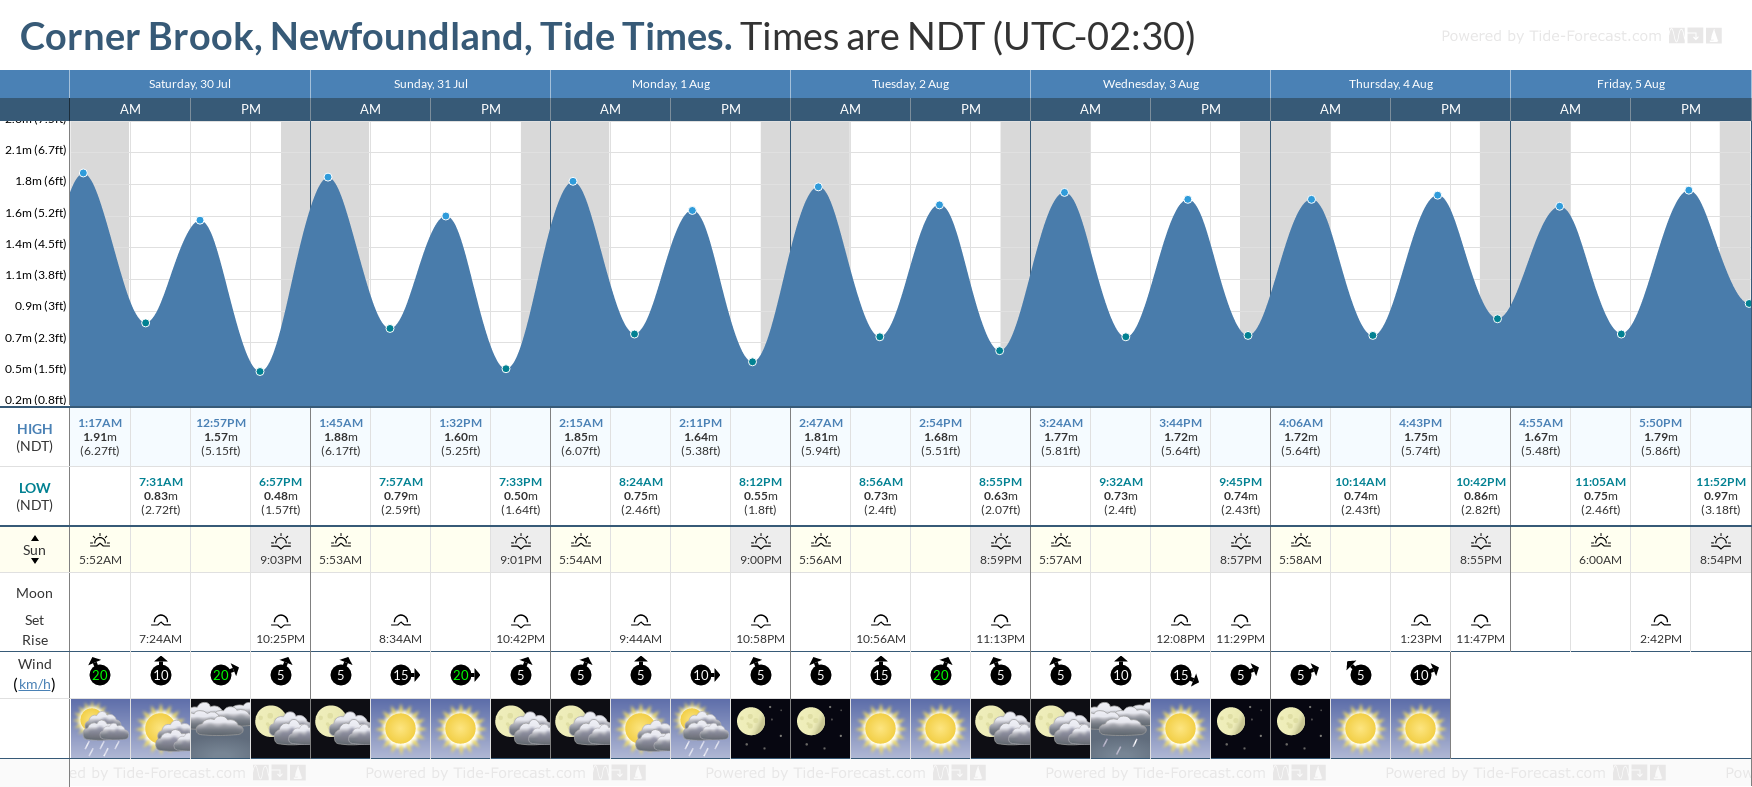 Corner Brook, Newfoundland Tide Chart including high and low tide tide times for the next 7 days